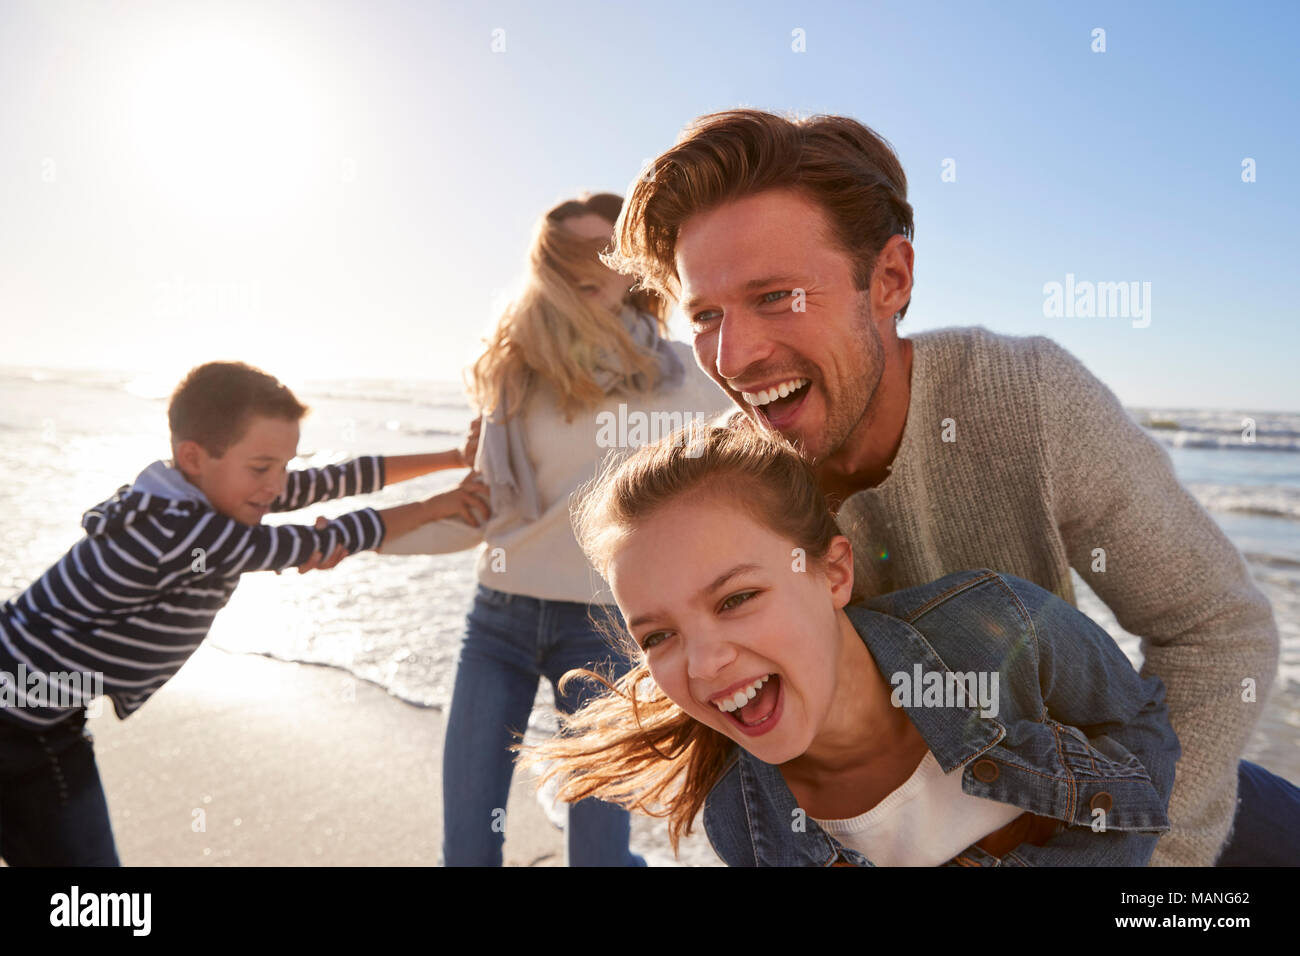 Parents With Children Having Fun On Winter Beach Together - Stock Image